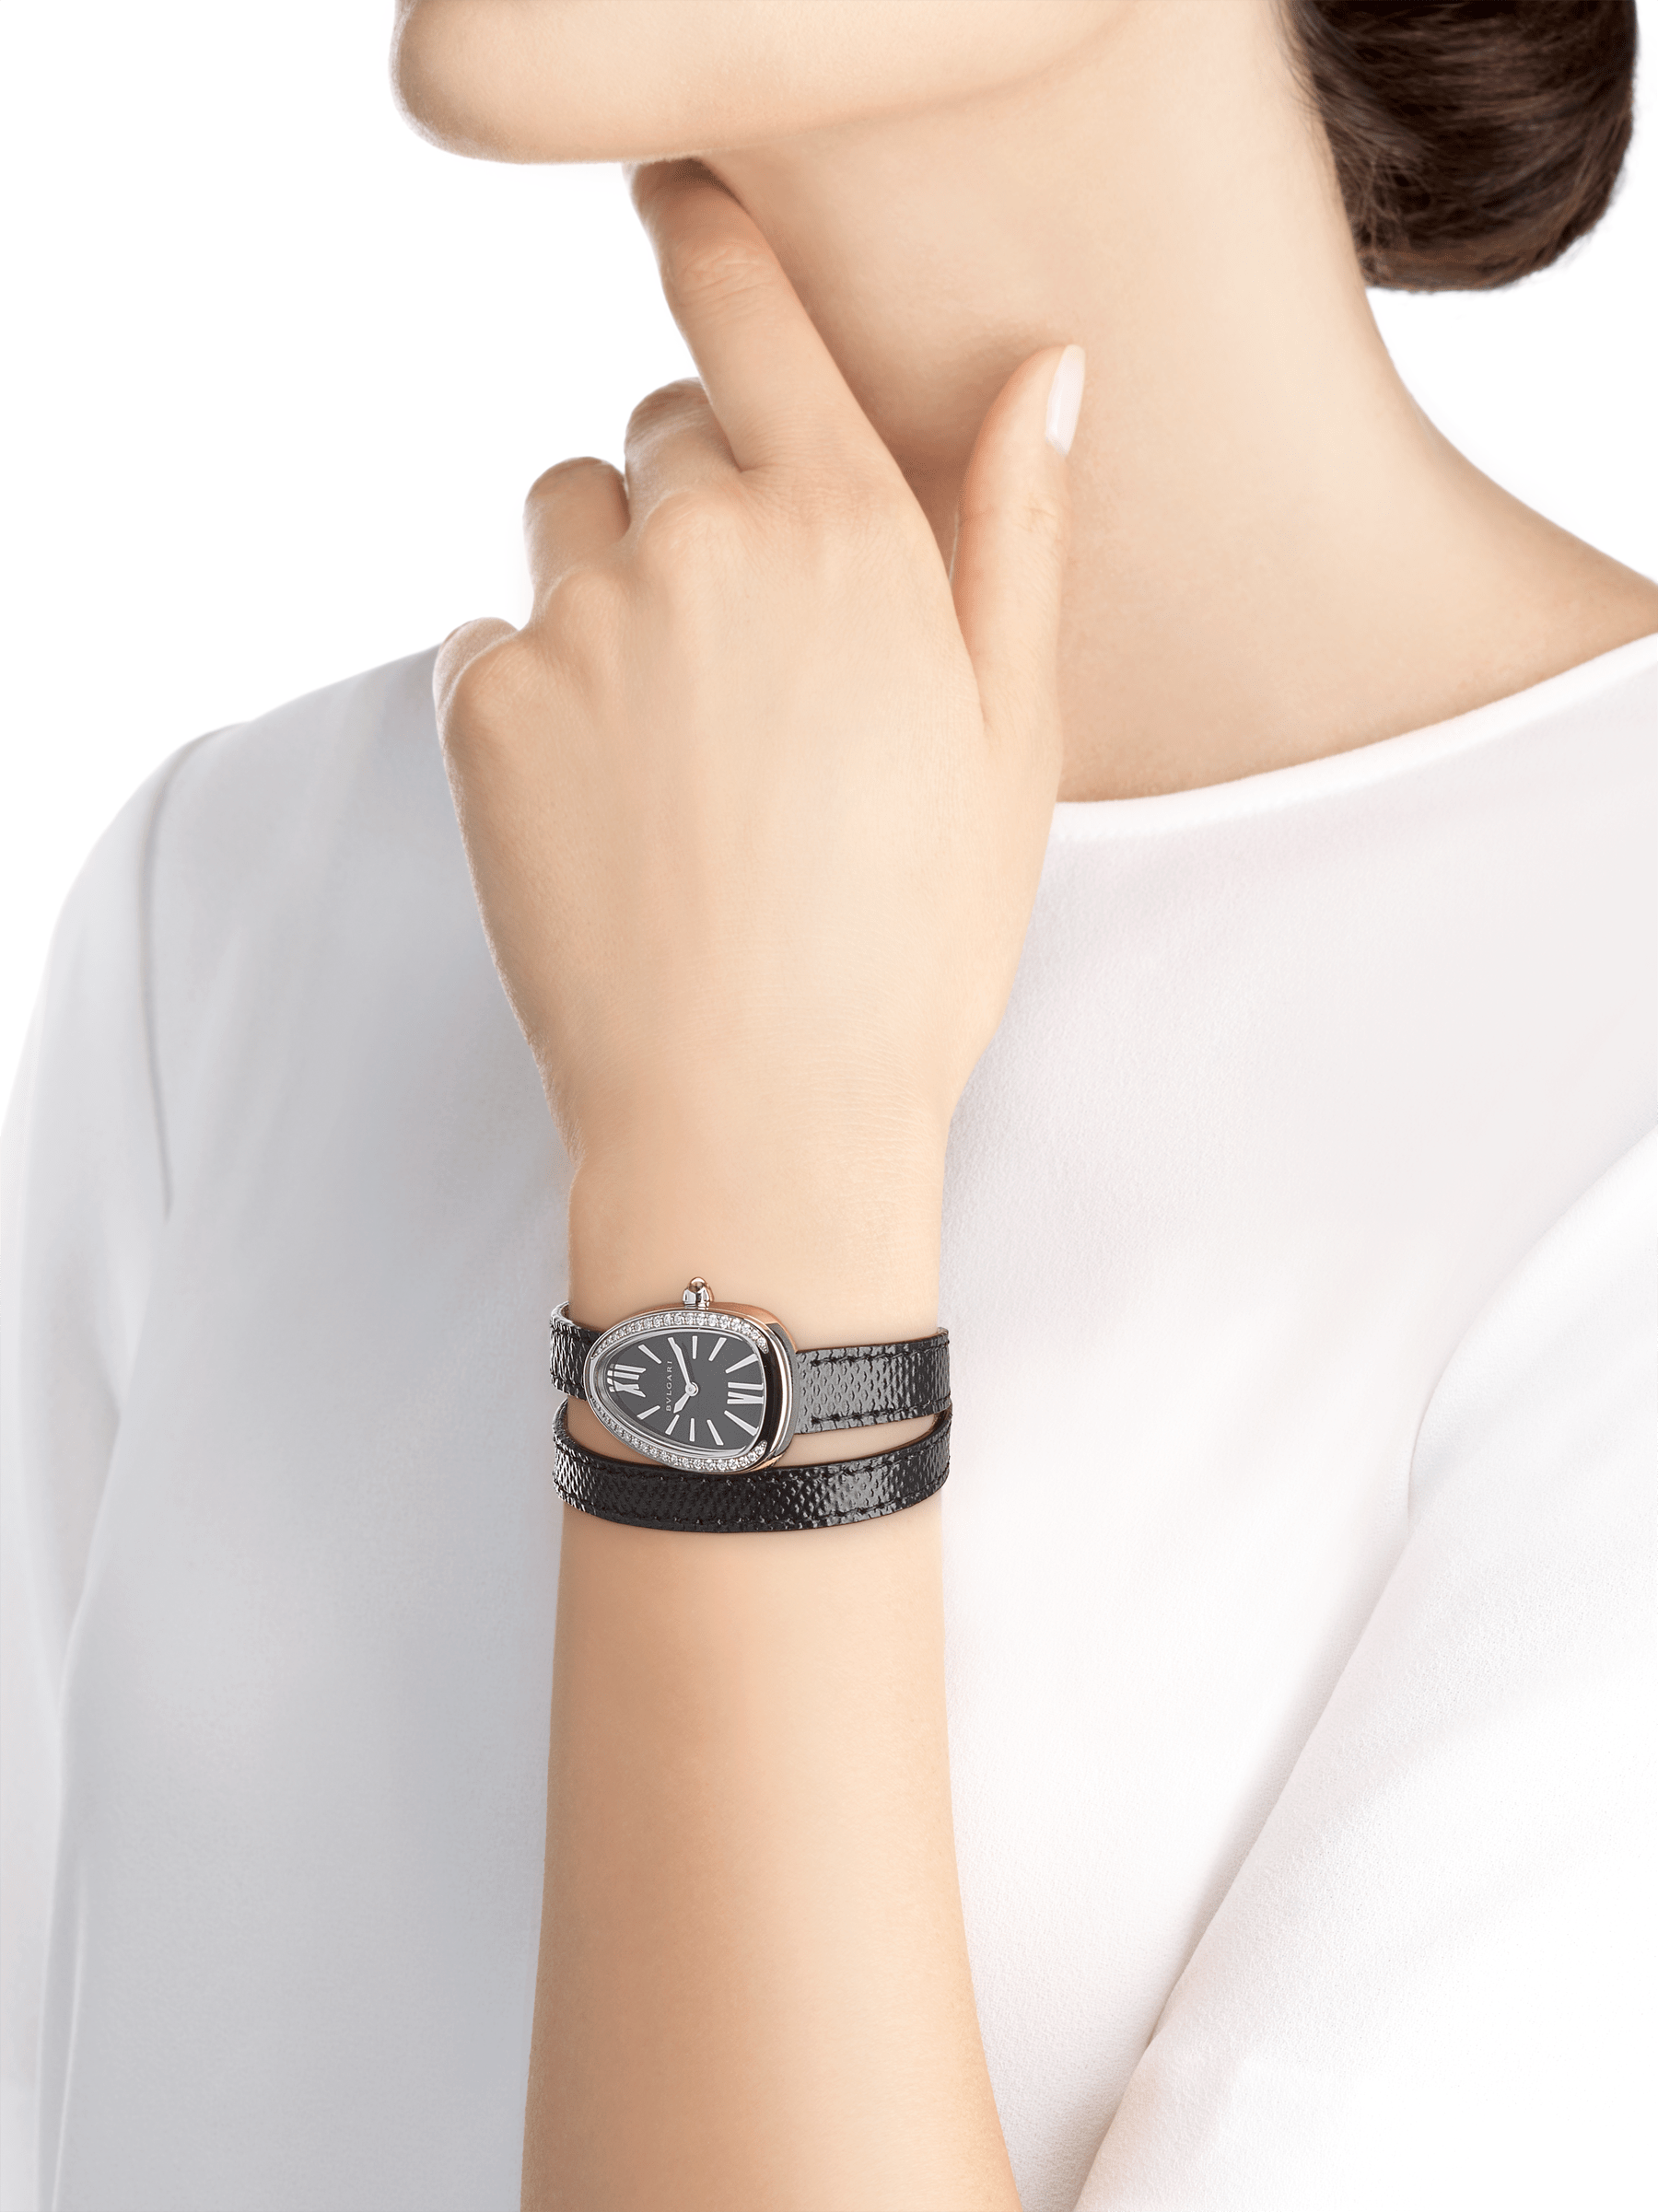 Serpenti watch with stainless steel case set with round brilliant-cut diamonds, black lacquered dial and interchangeable double spiral bracelet in black karung leather 102921 image 3